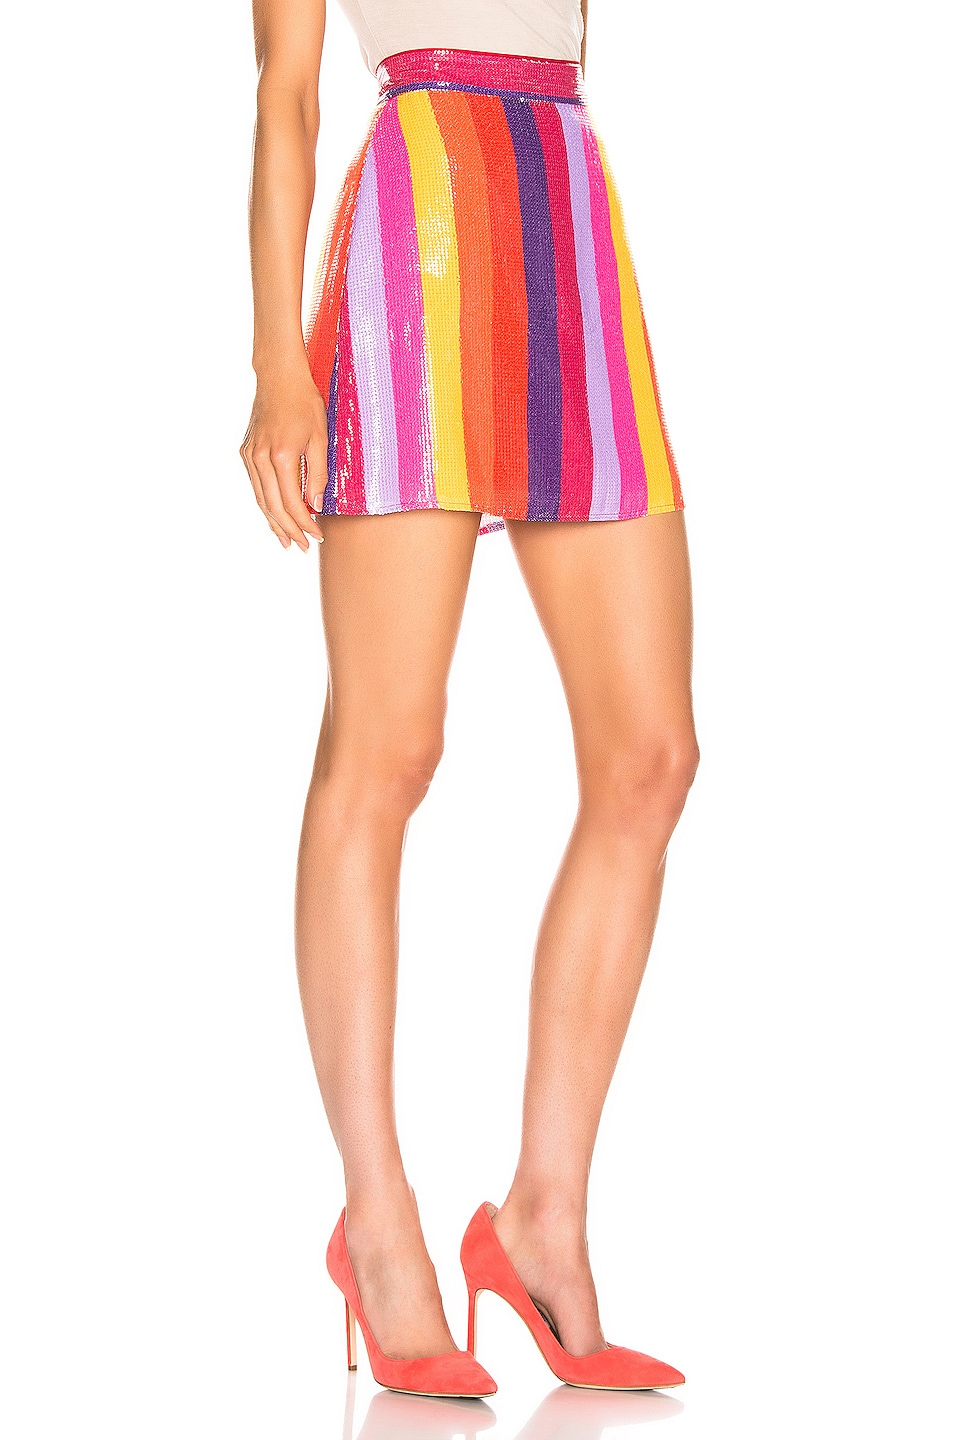 Image 2 of Olivia Rubin Libby Skirt in Rainbow Stripe